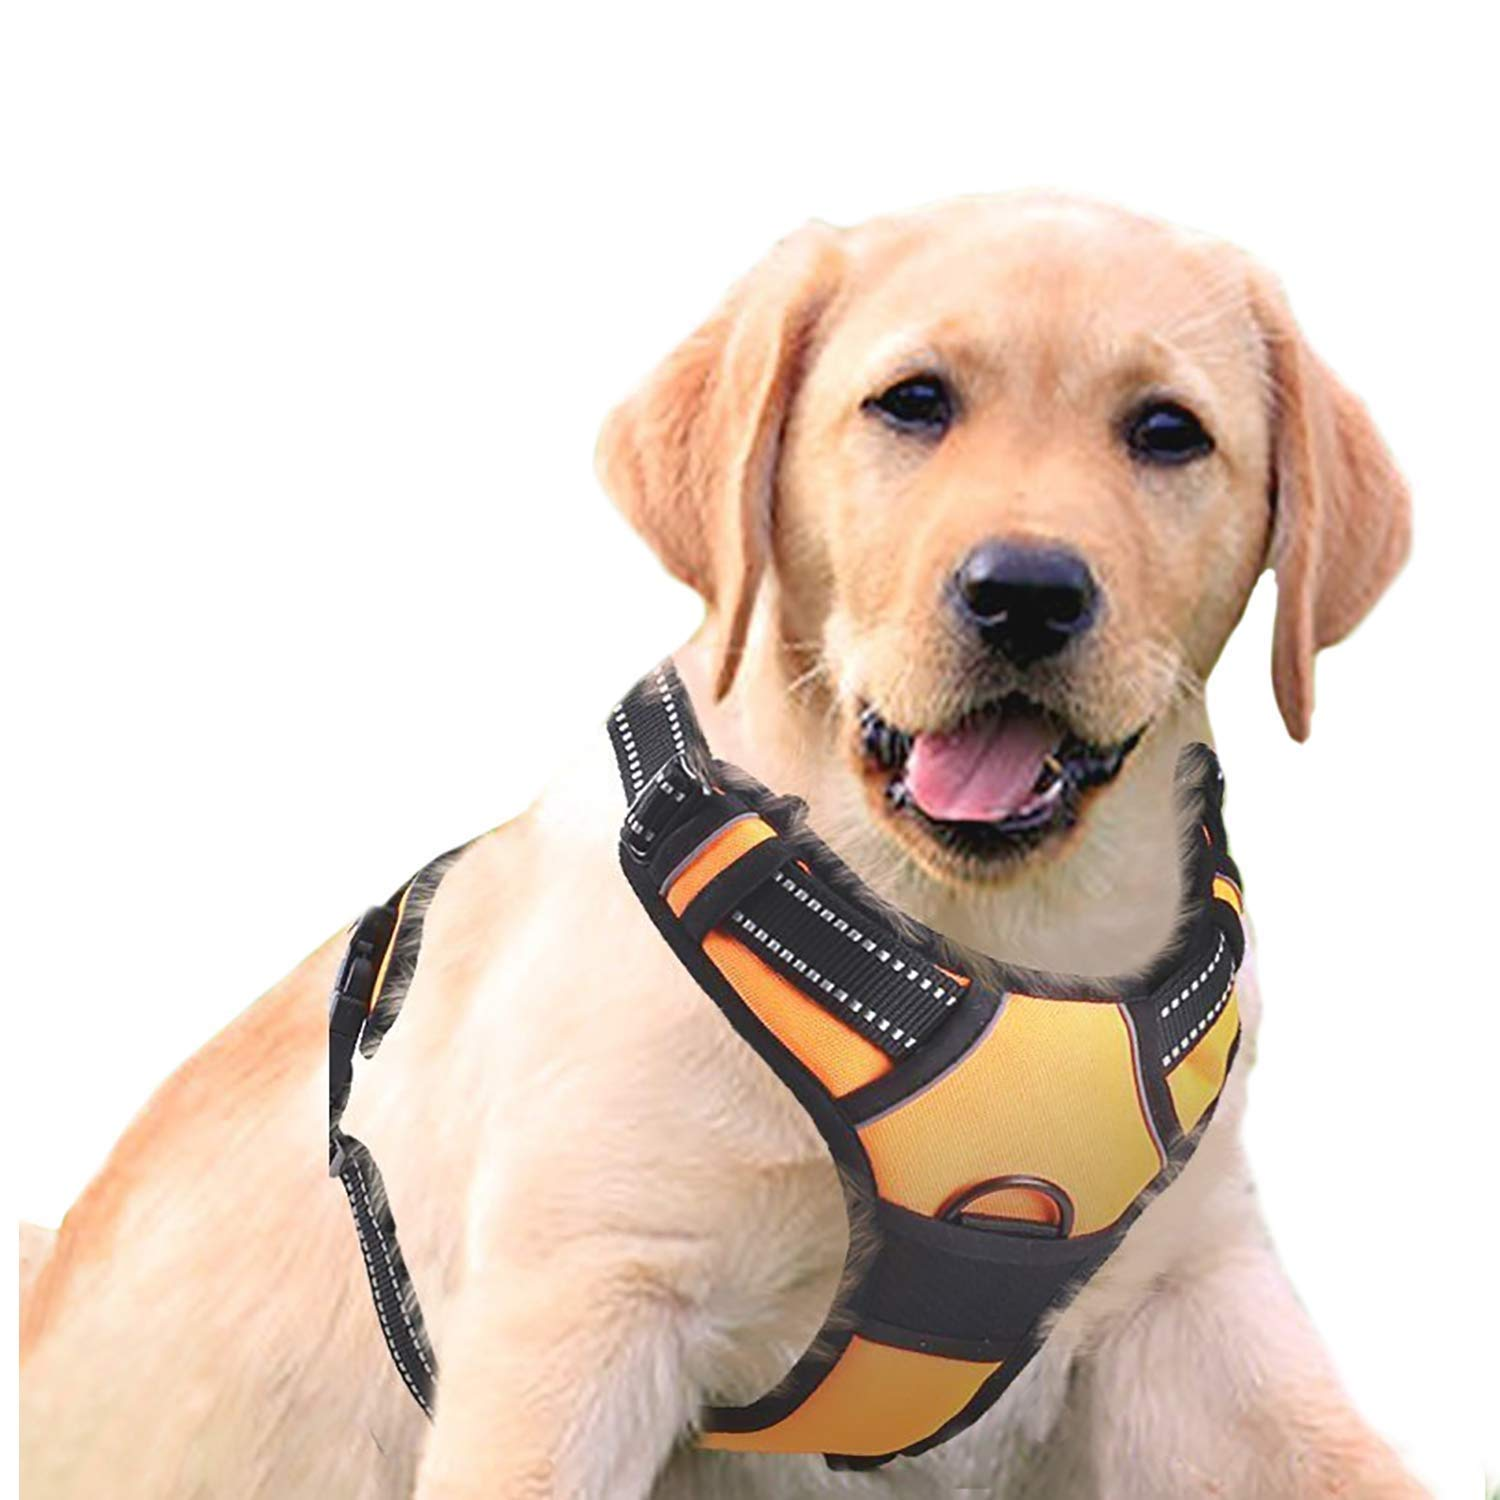 Rabbitgoo Dog Harness No-Pull Pet Harness Adjustable Outdoor Pet Vest 3M Reflective Oxford Material Vest for Dogs Easy Control for Small Medium Large Dogs